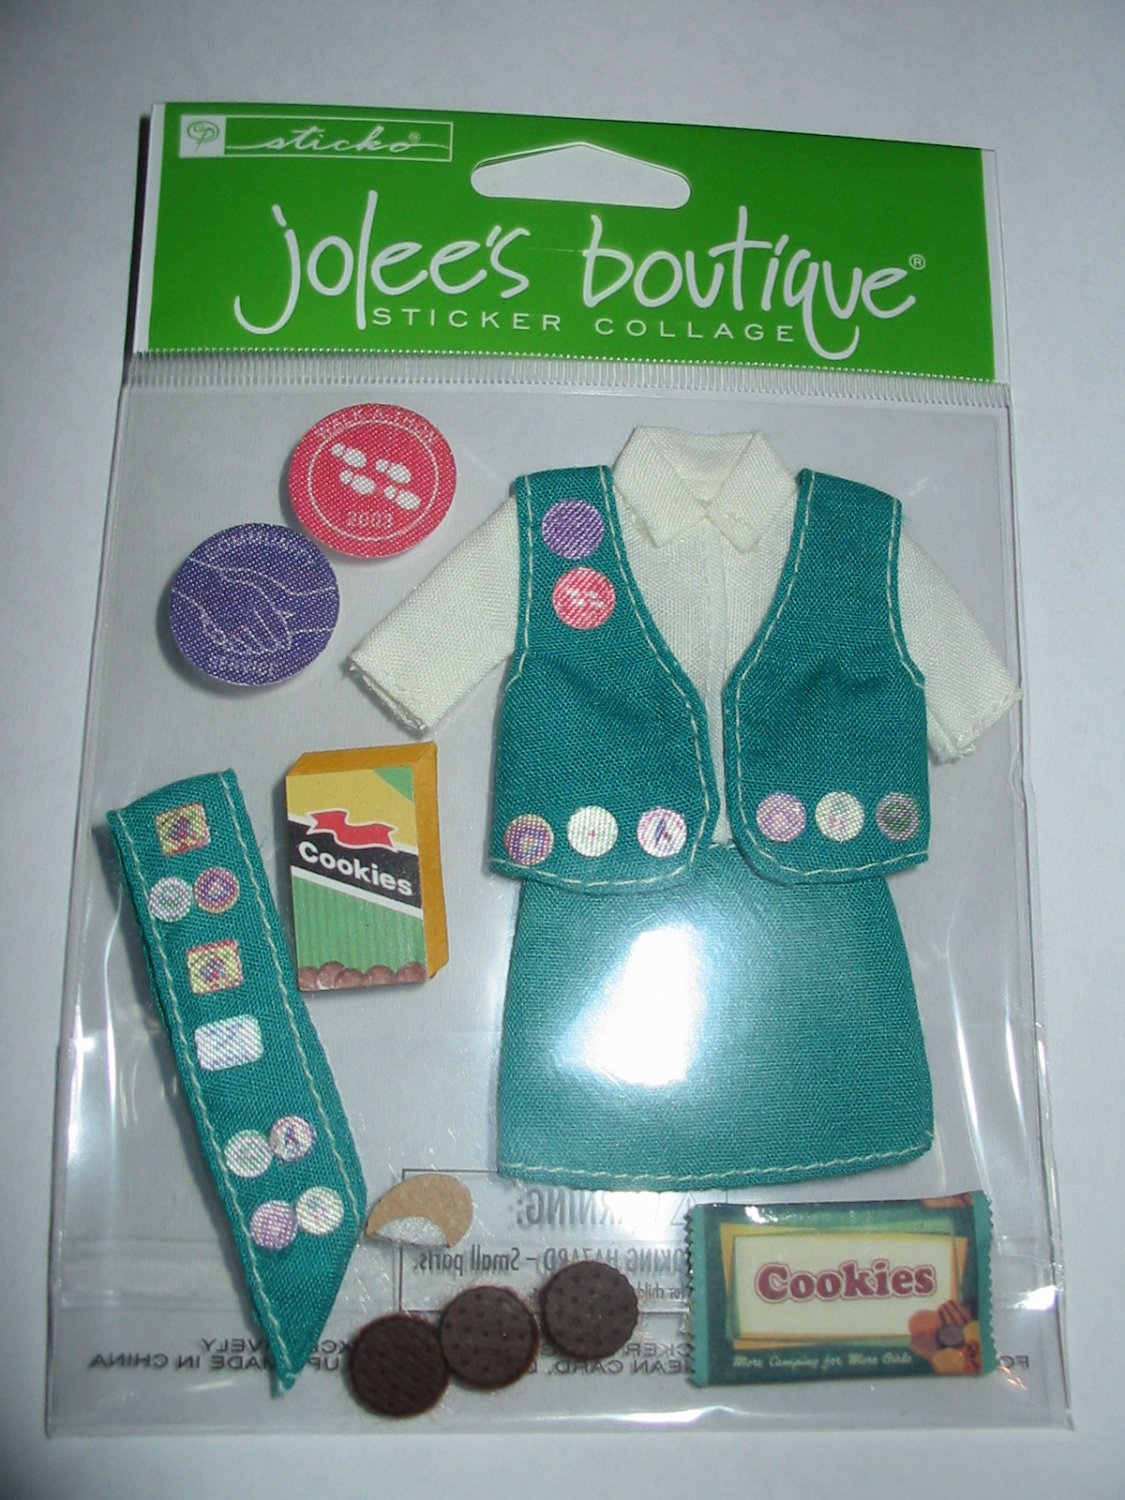 *** CLEARANCE *** Girl Scout Scrapbook Sticker Jolee's Boutique Retired Her Scouting